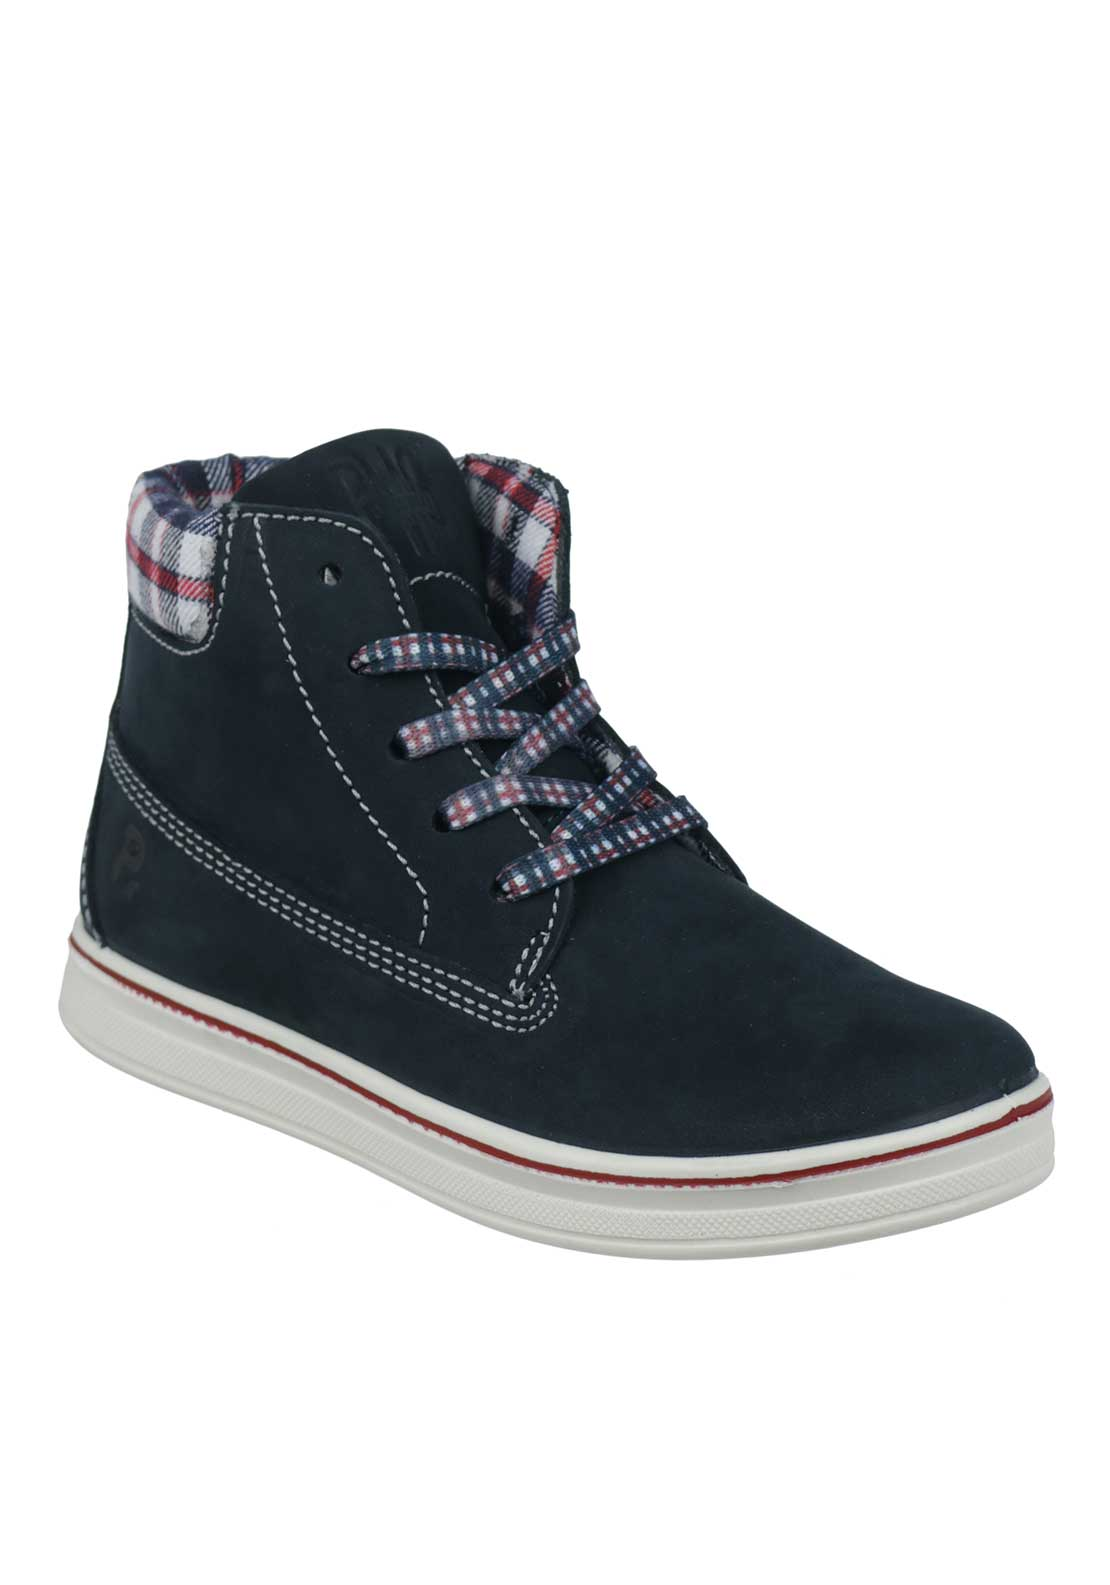 Primigi Boys Suede Chequered Laced Boots, Navy